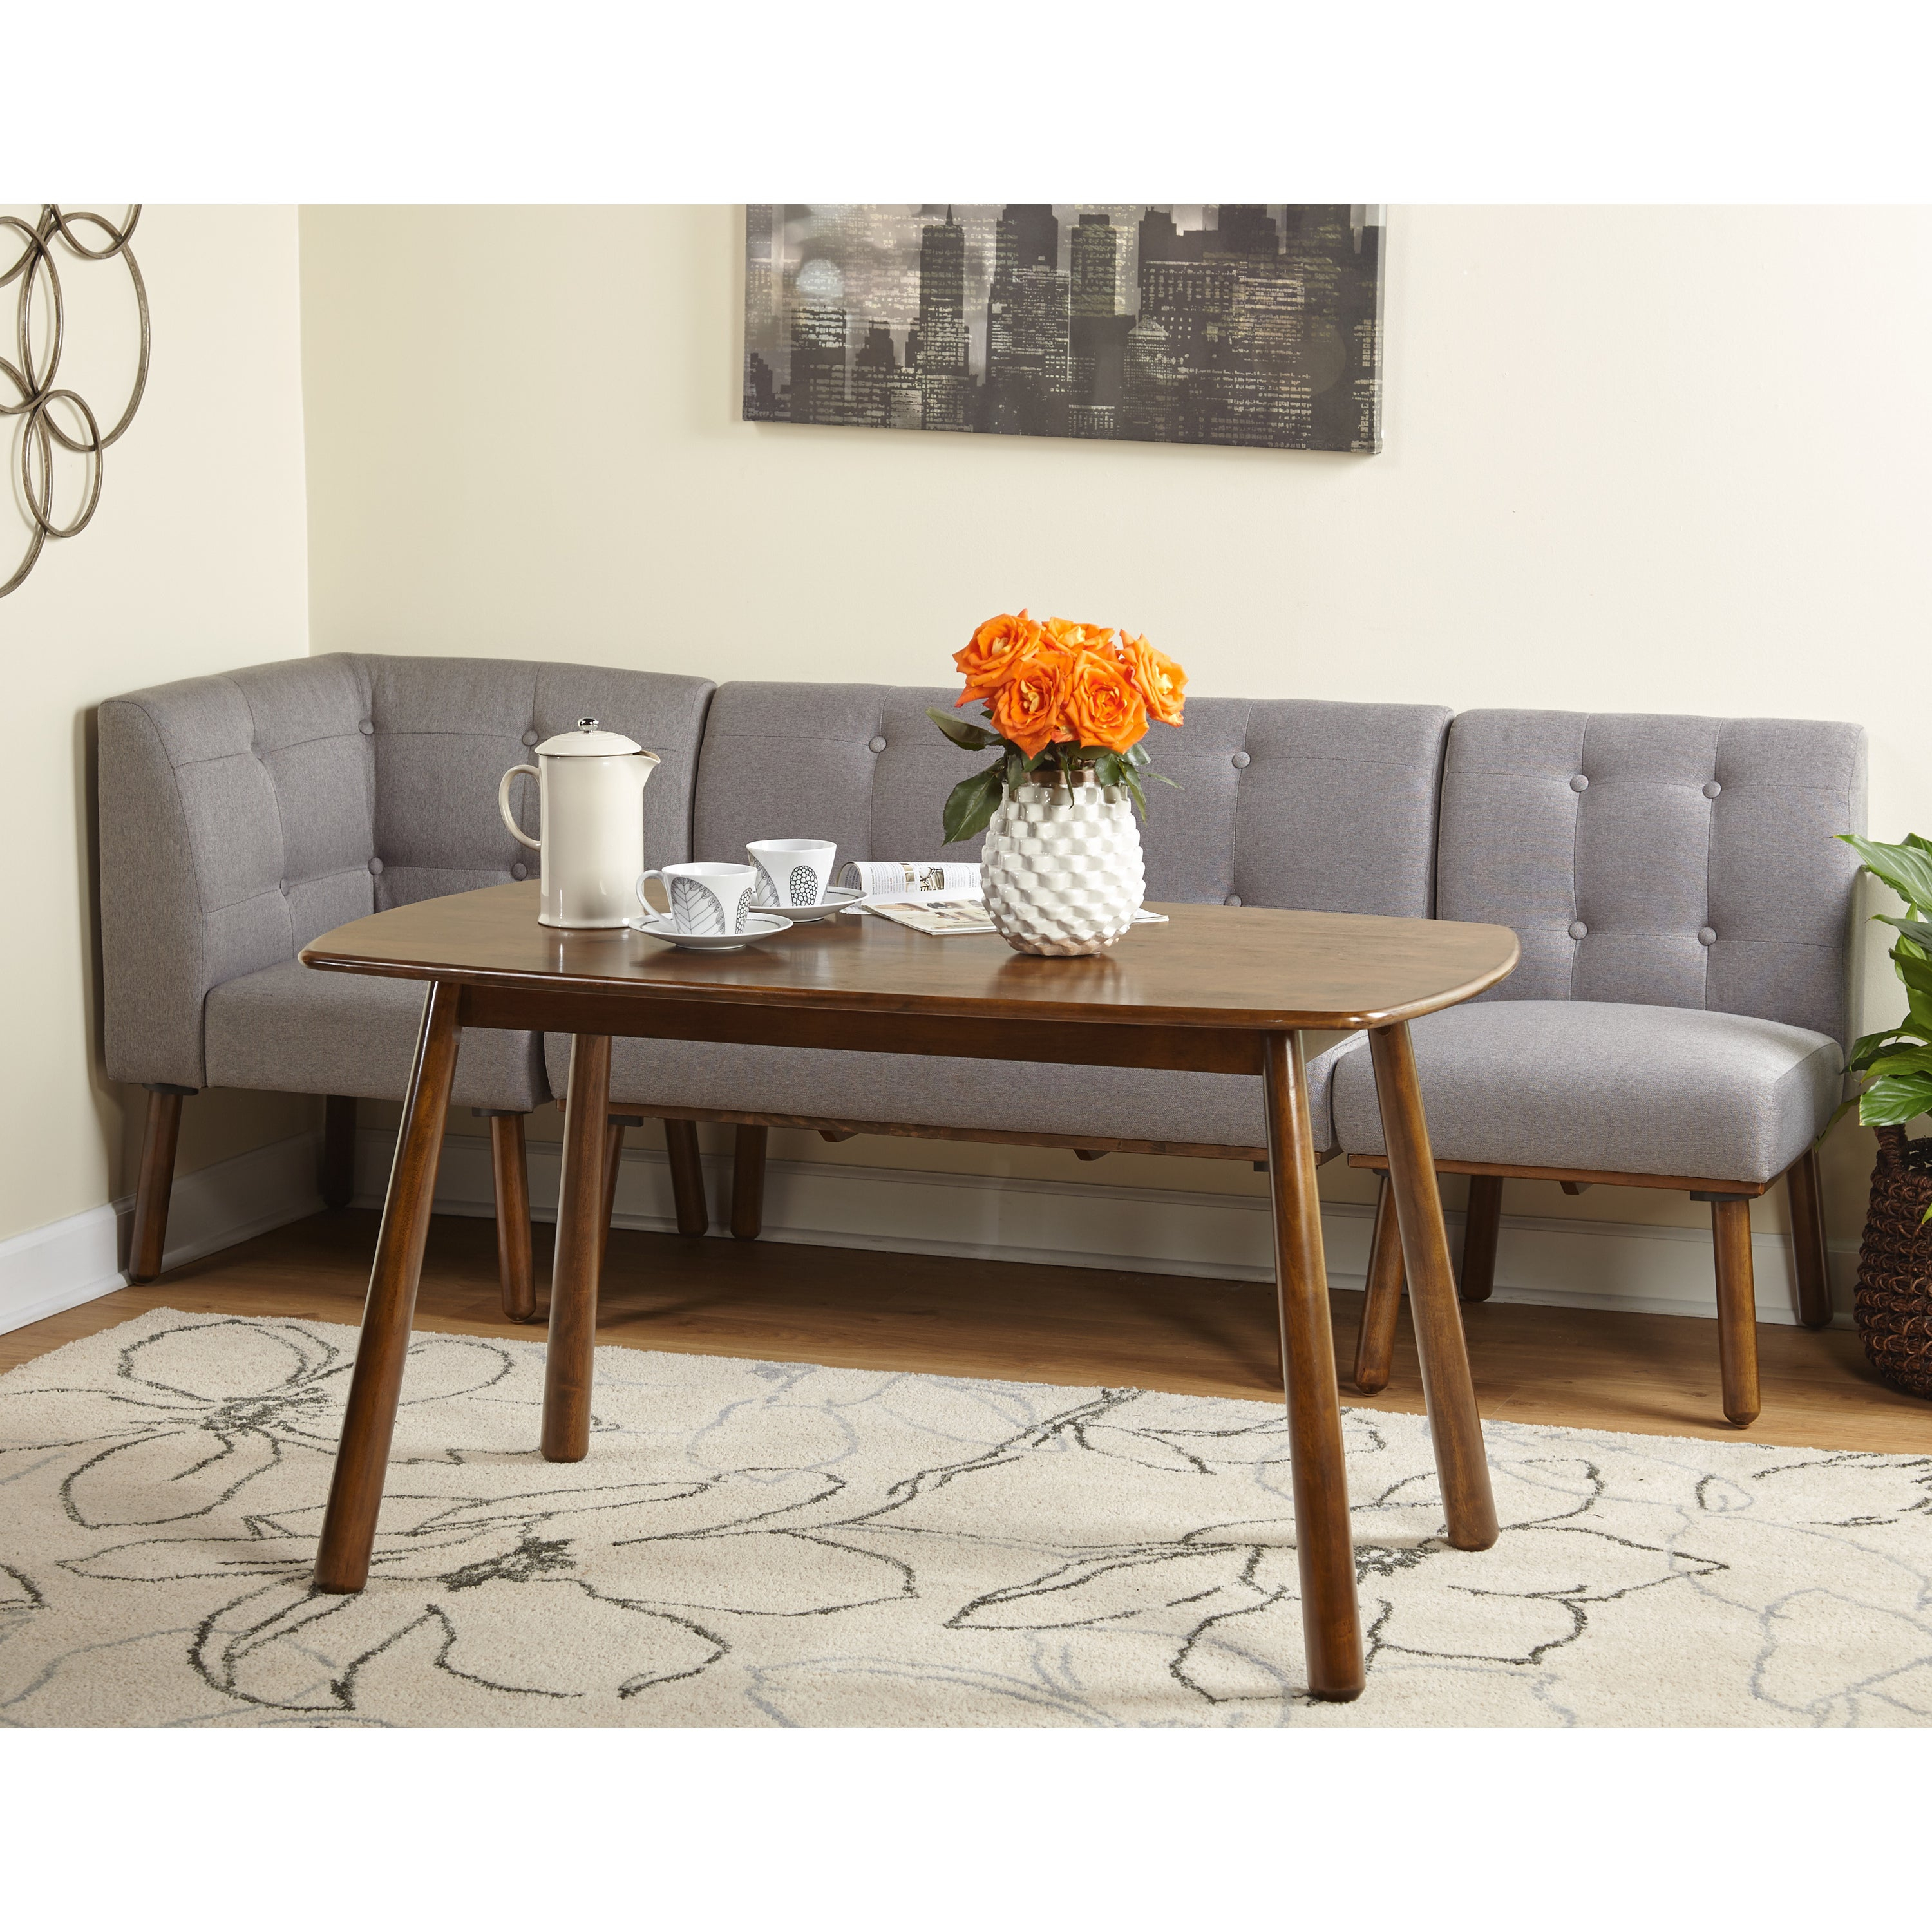 Simple Living 4 Piece Playmate Nook Dining Set In Newest Maloney 3 Piece Breakfast Nook Dining Sets (Image 17 of 20)